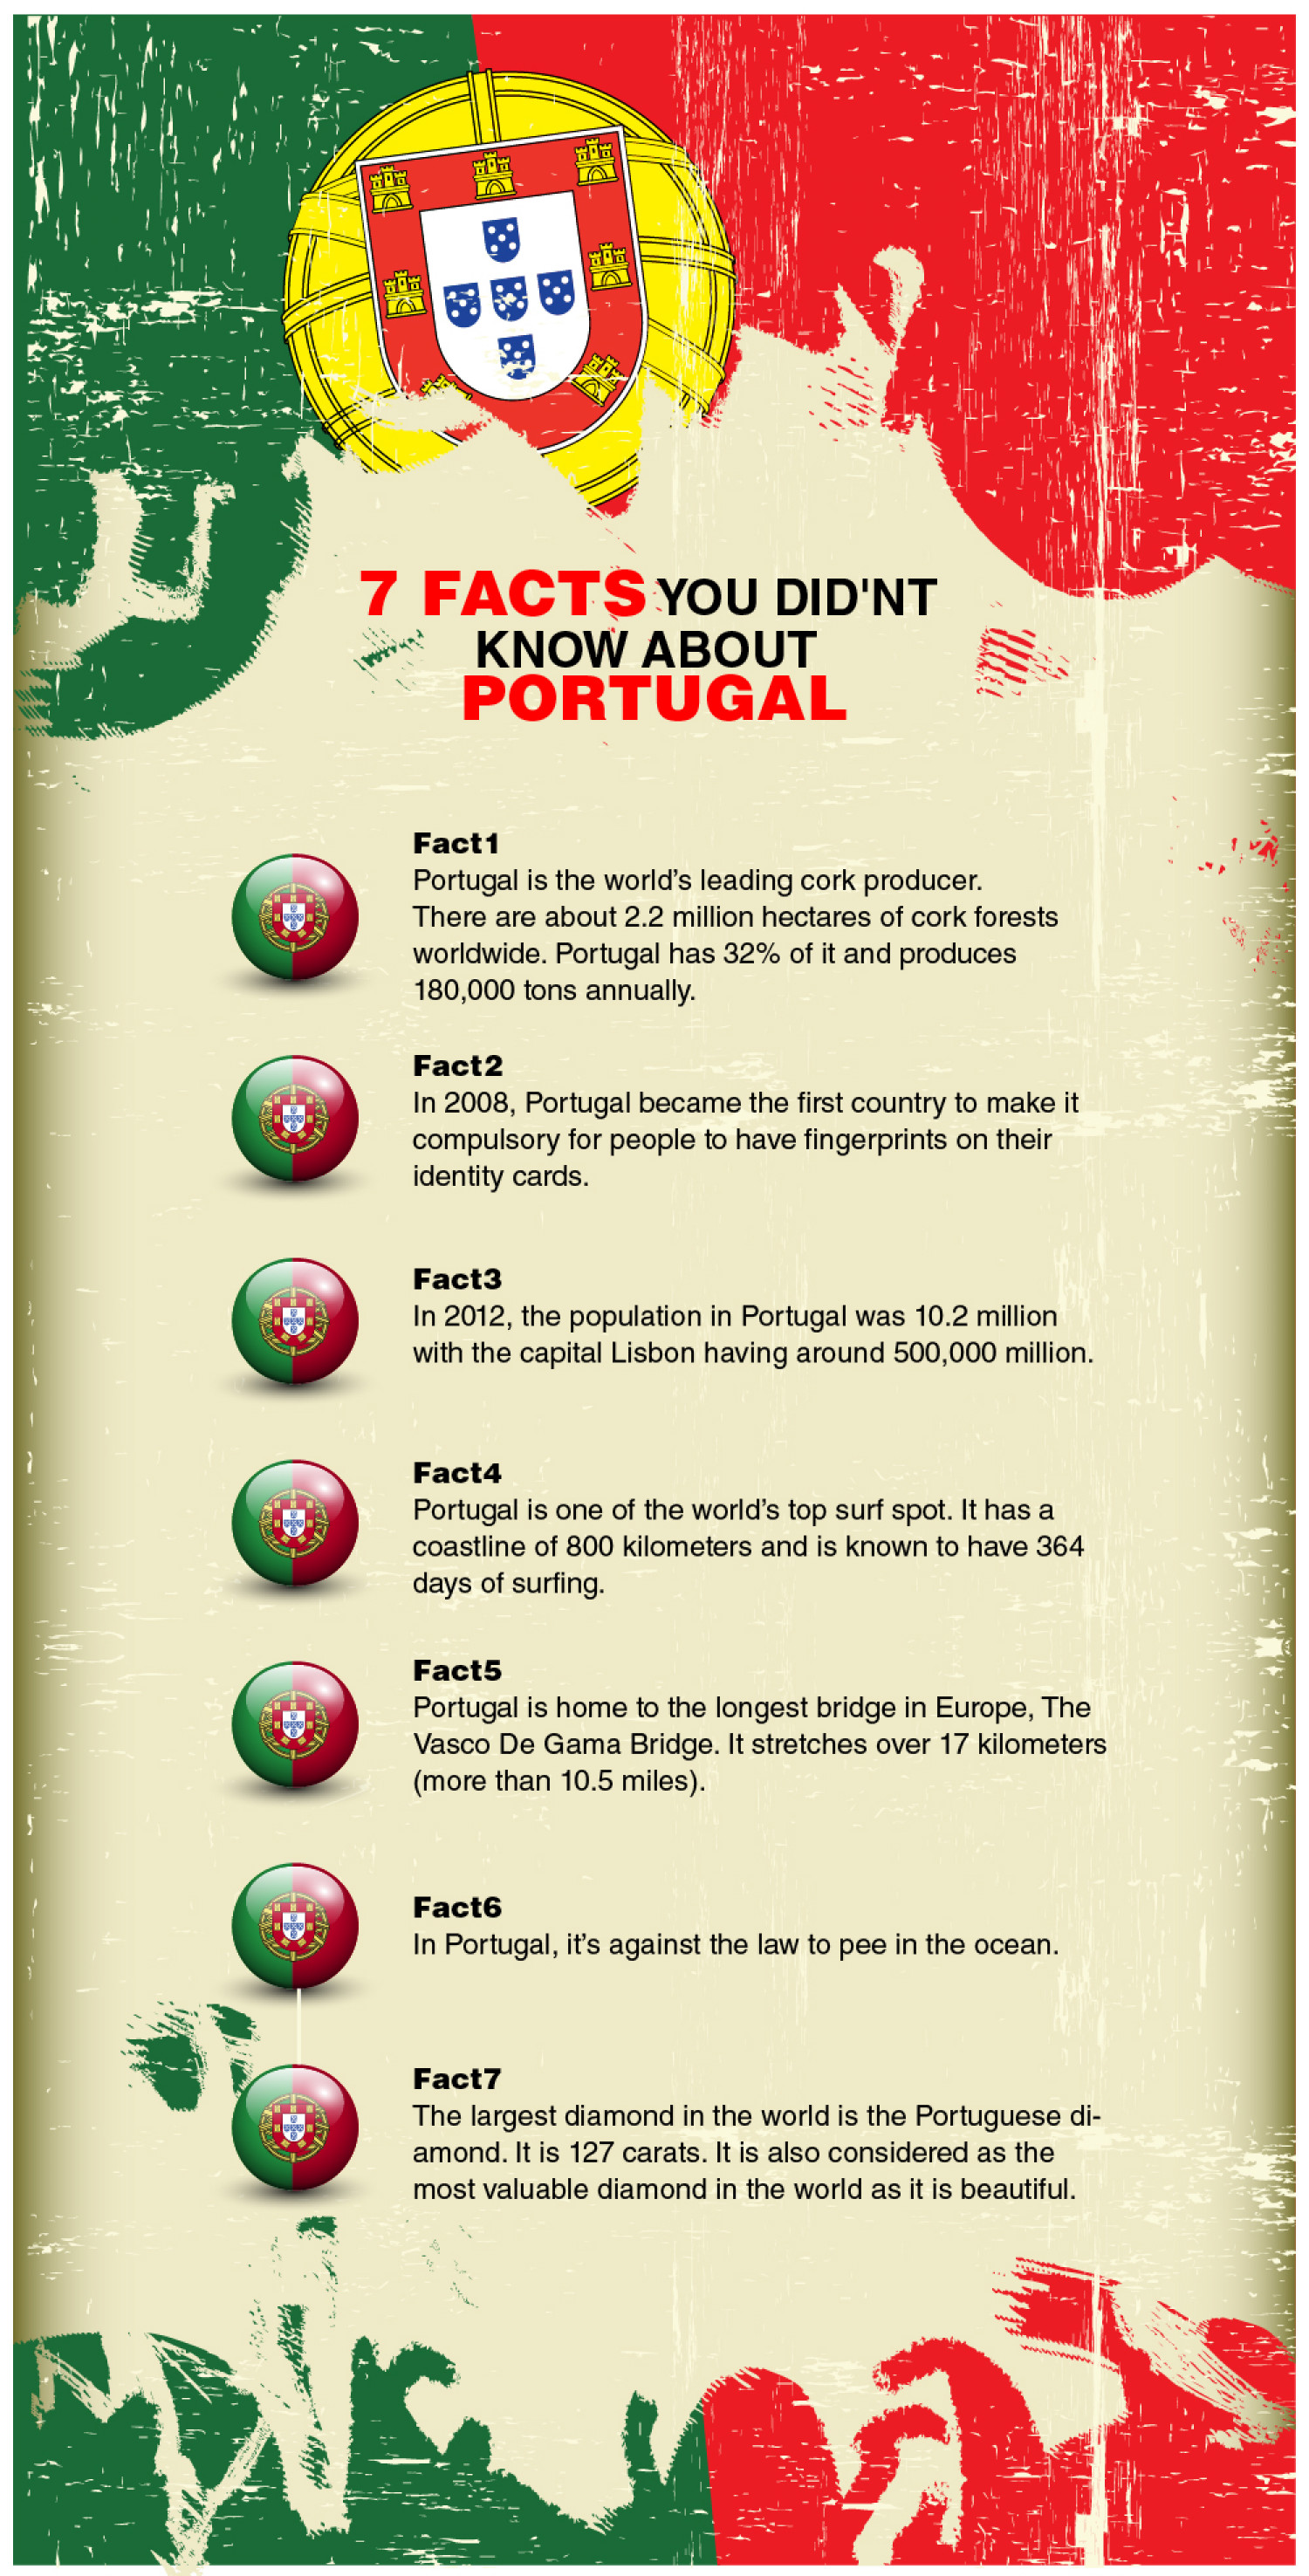 7 Facts You Didn't Know about Portugal Infographic